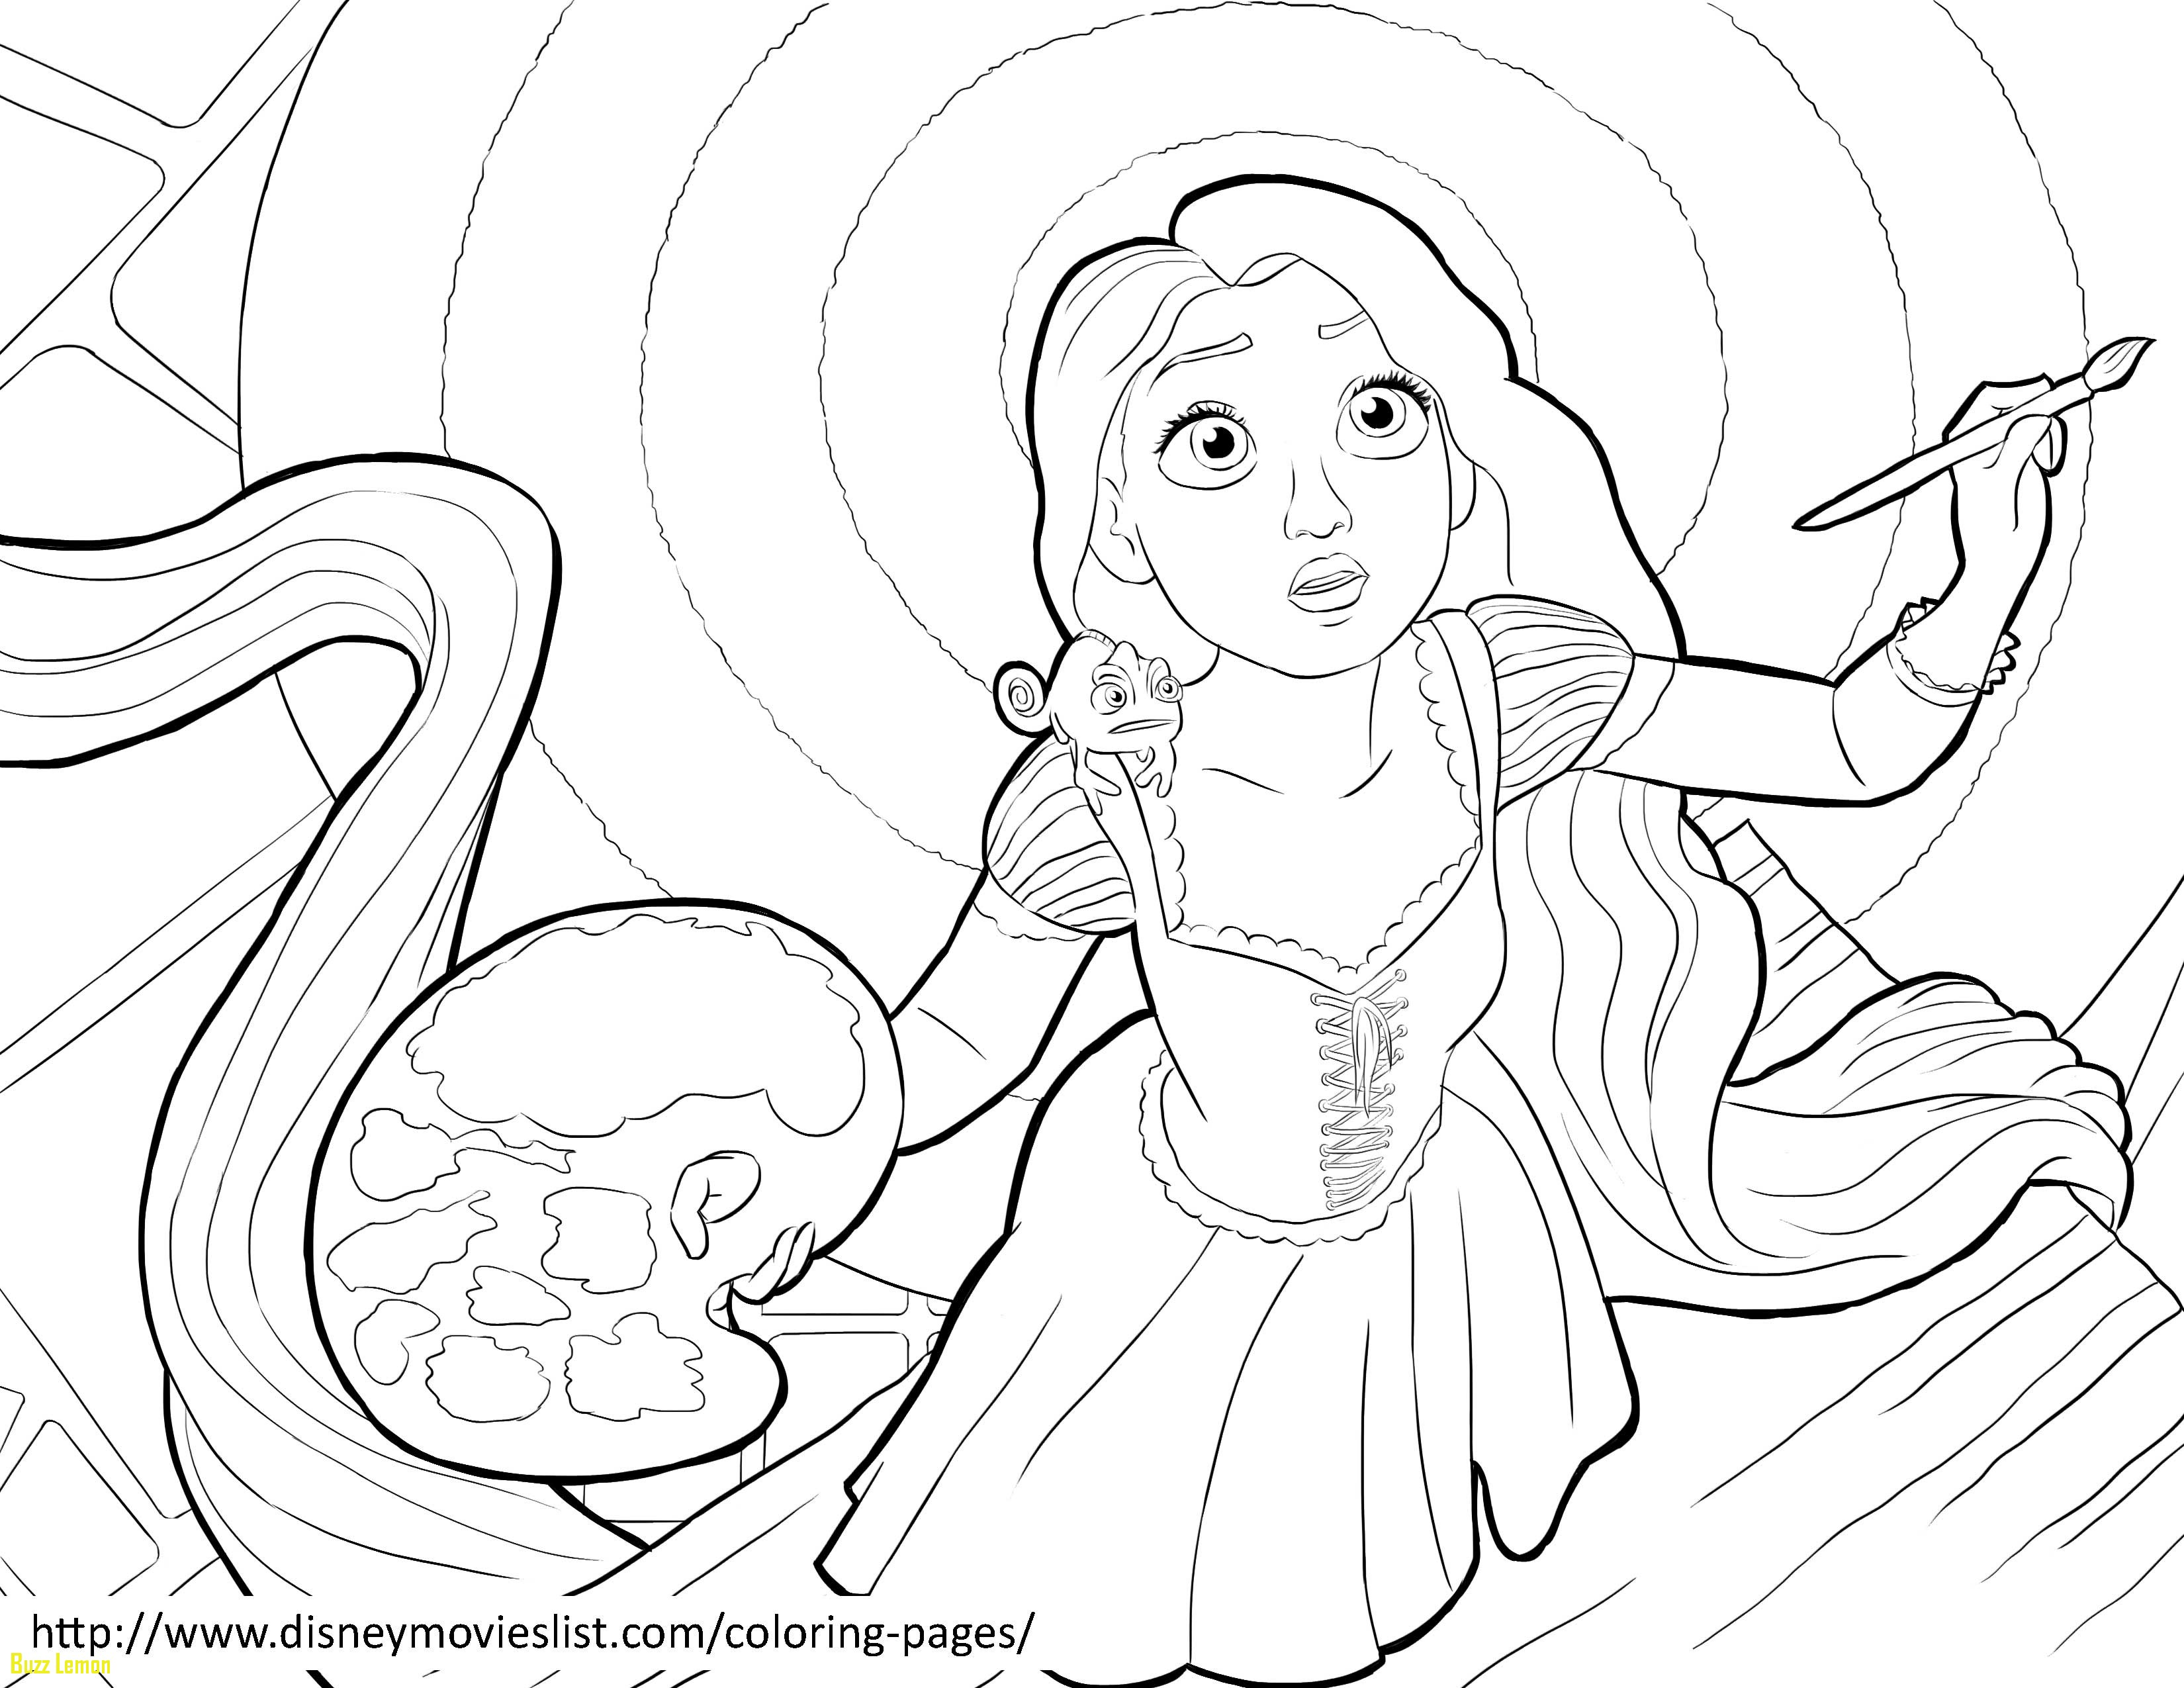 3300x2550 Exciting Microsoft Paint Coloring Pages Best Of Painting To Print